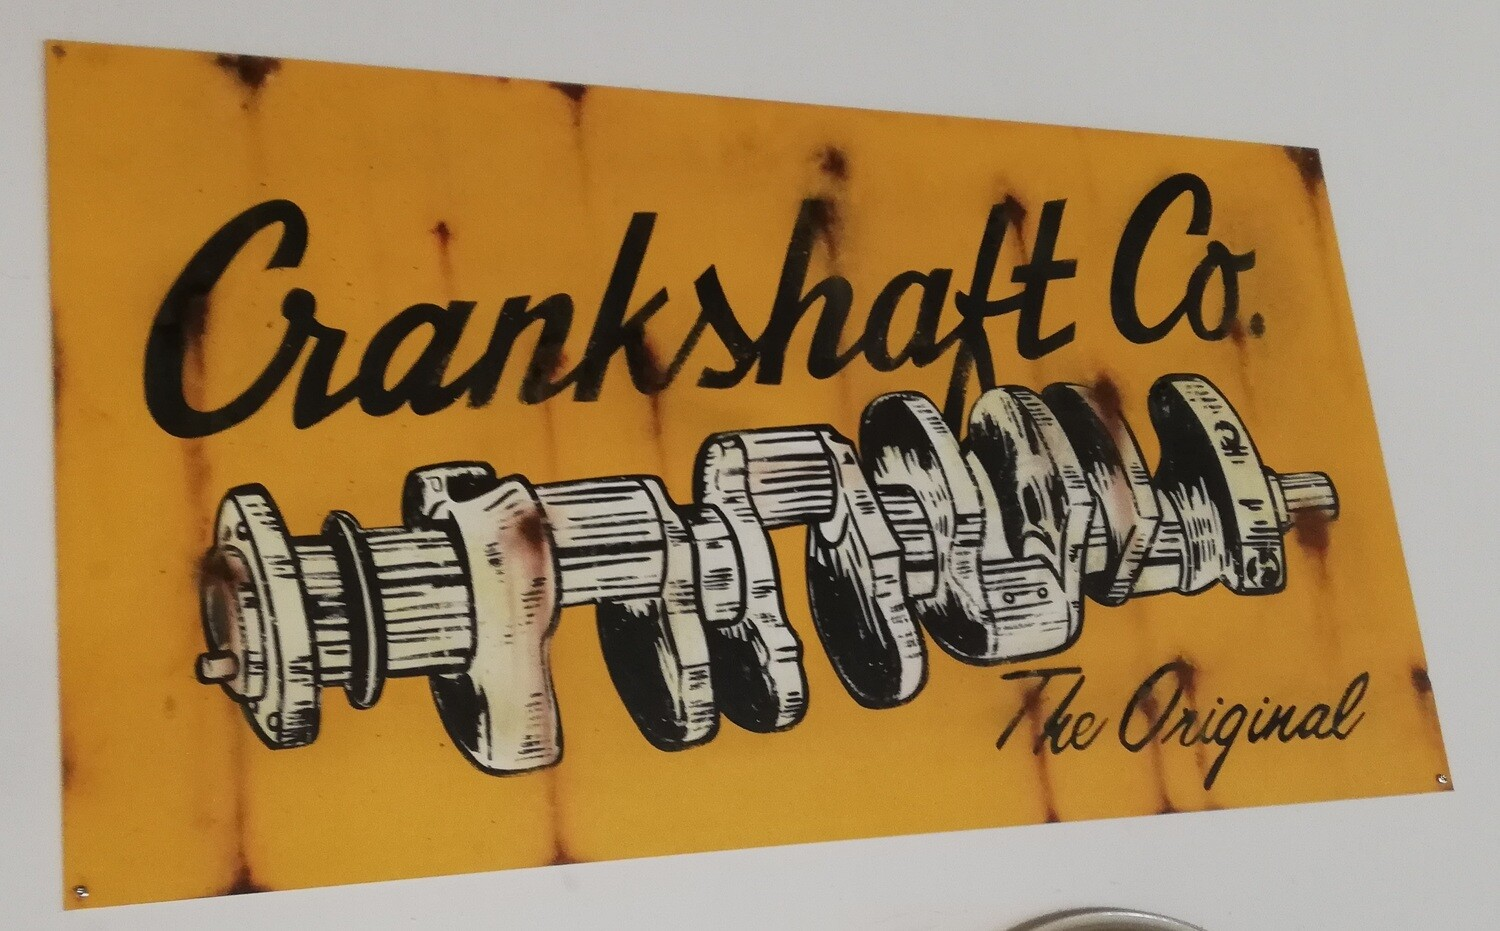 Crankshaft Co.